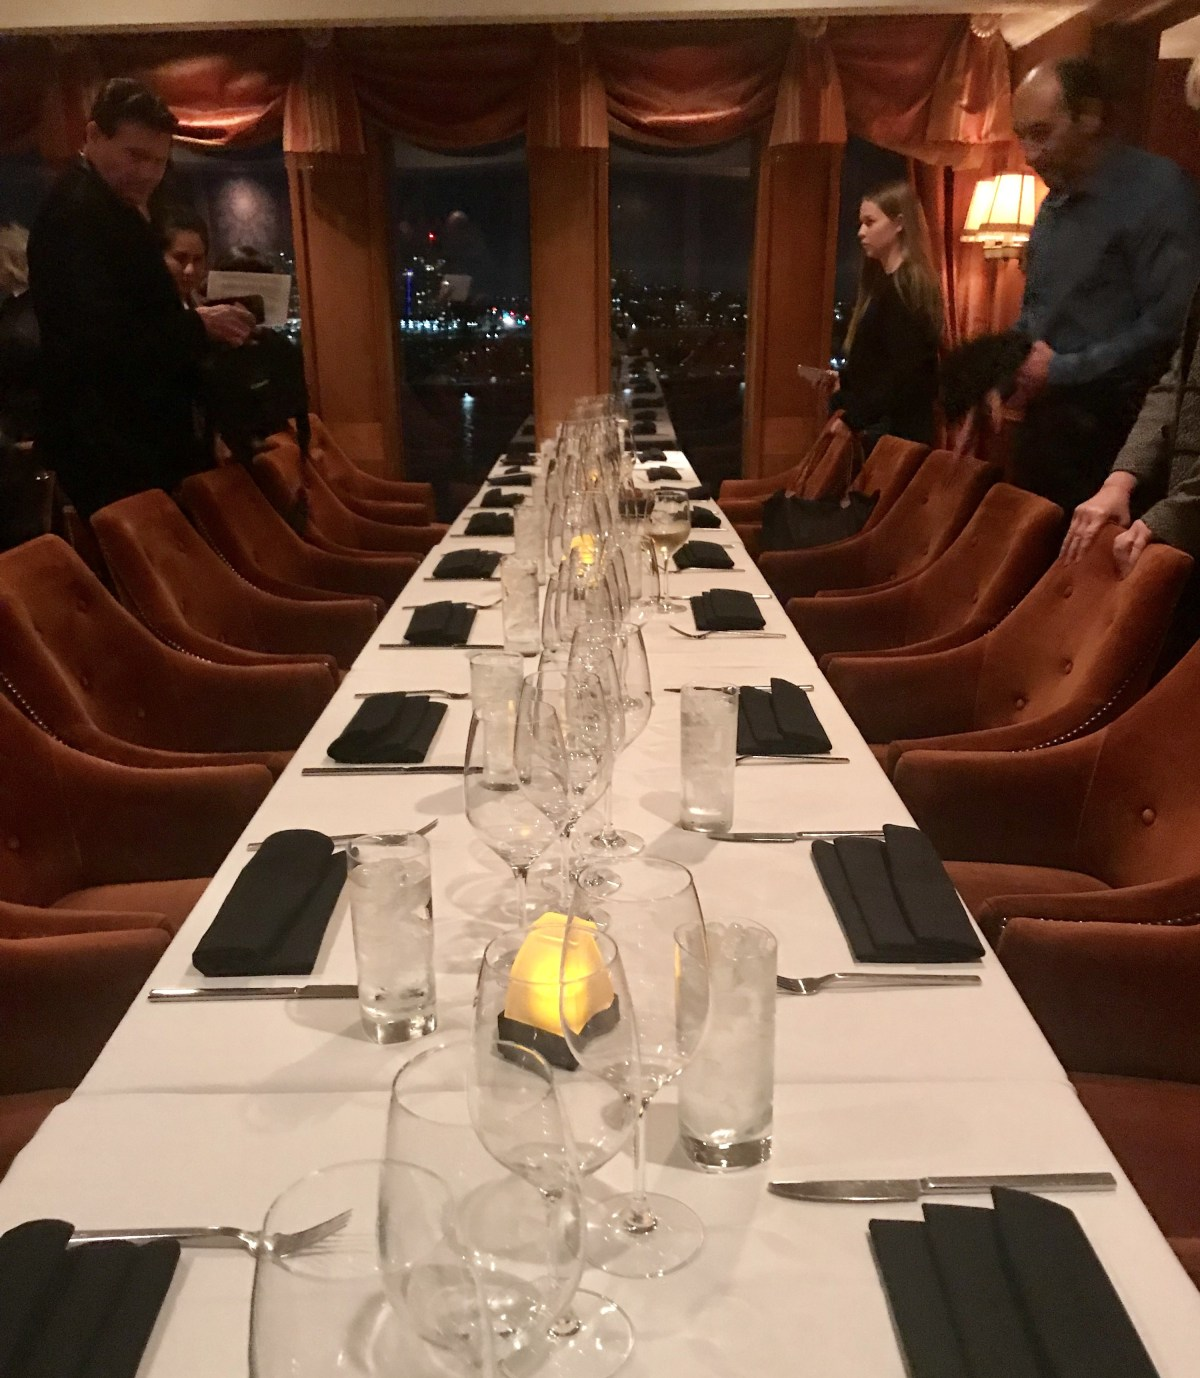 Sir Winston's dining room; Credit: Michele Stueven